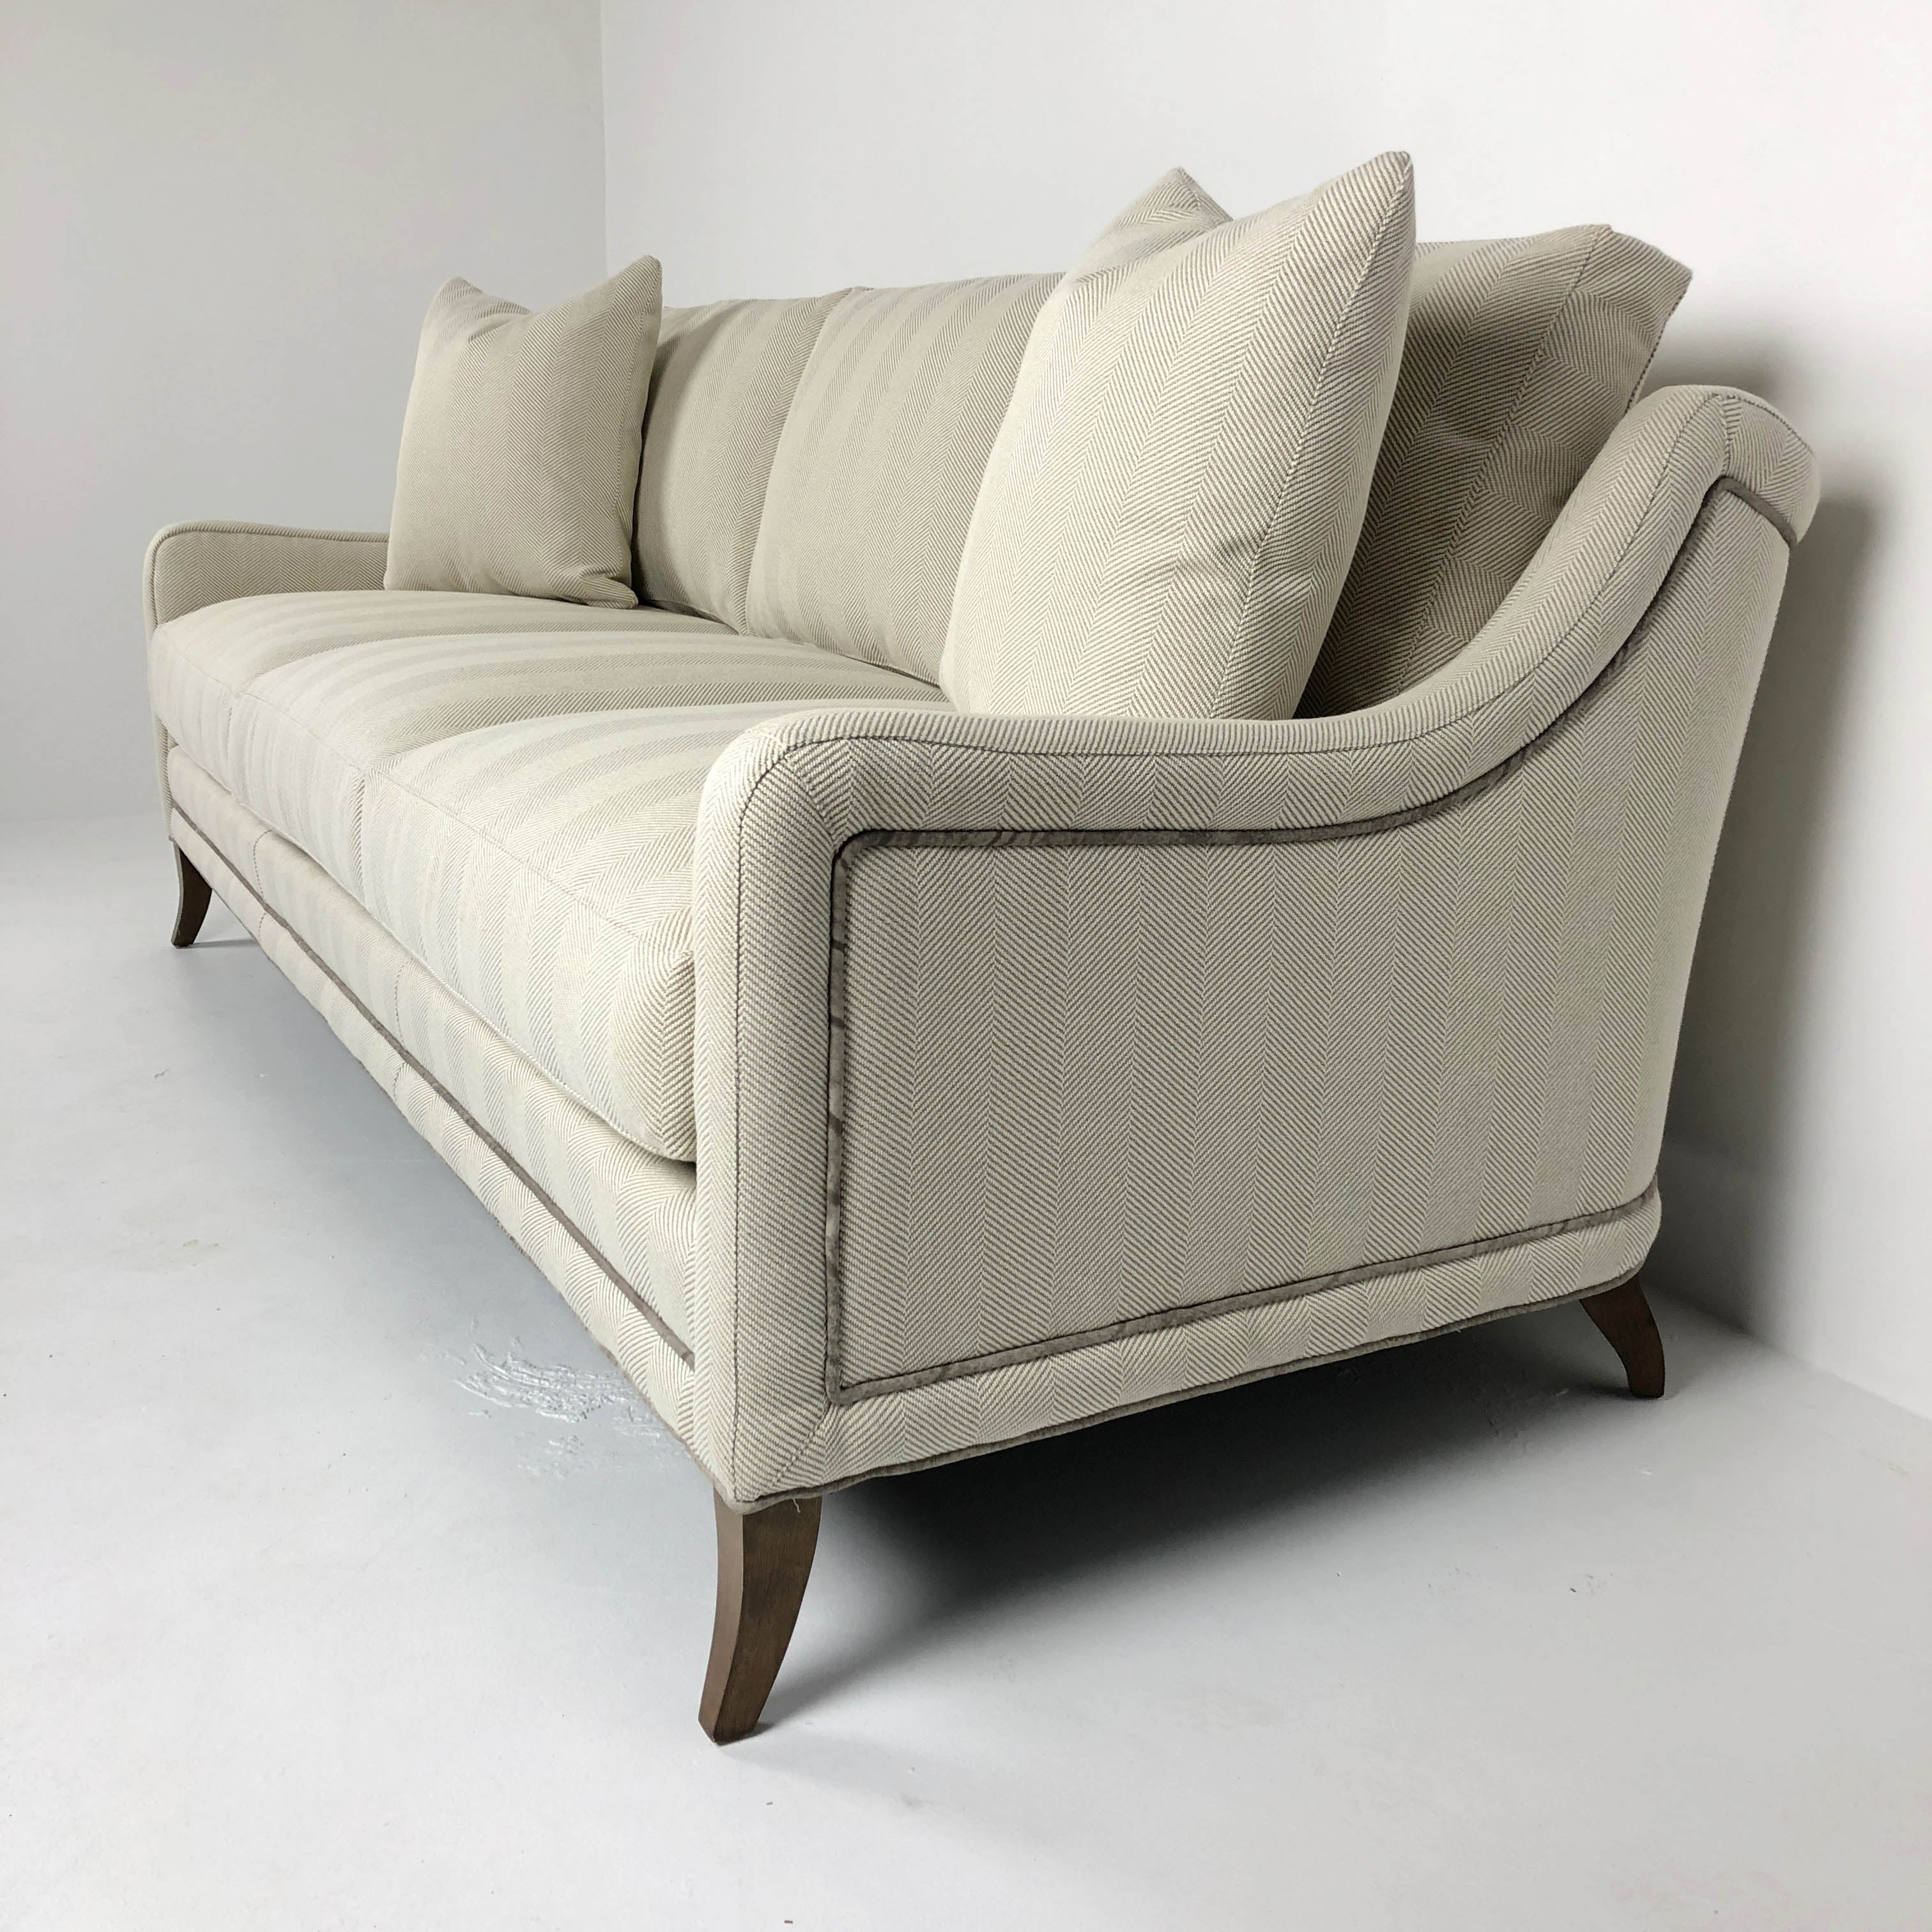 Halsted Sofa